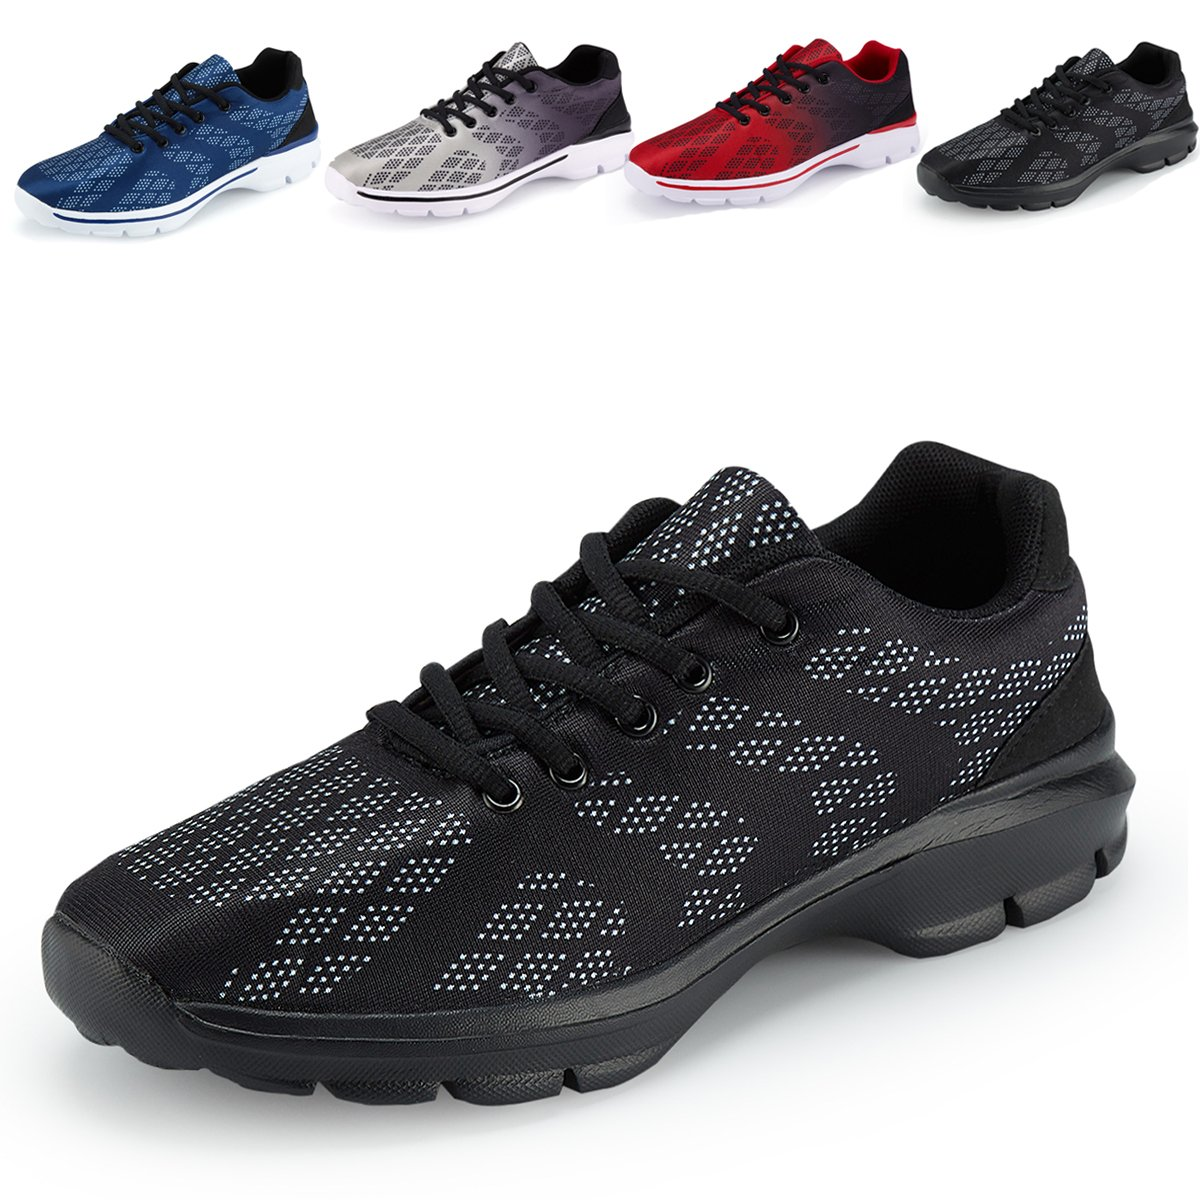 Men's Lightweight Breathable Running Tennis Sneakers Casual Walking Shoes (12 D(M) US, Black)